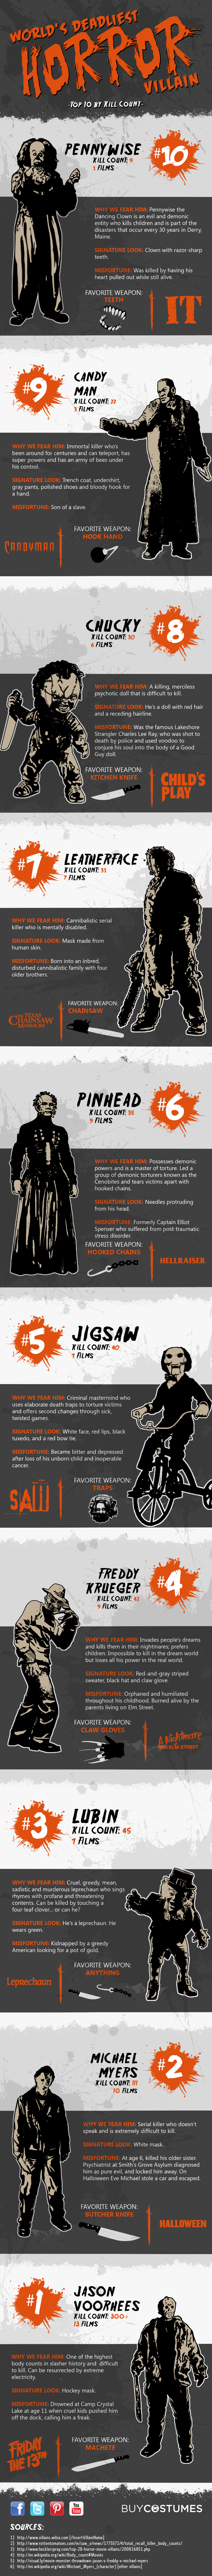 top-10-serial-killers-infographic